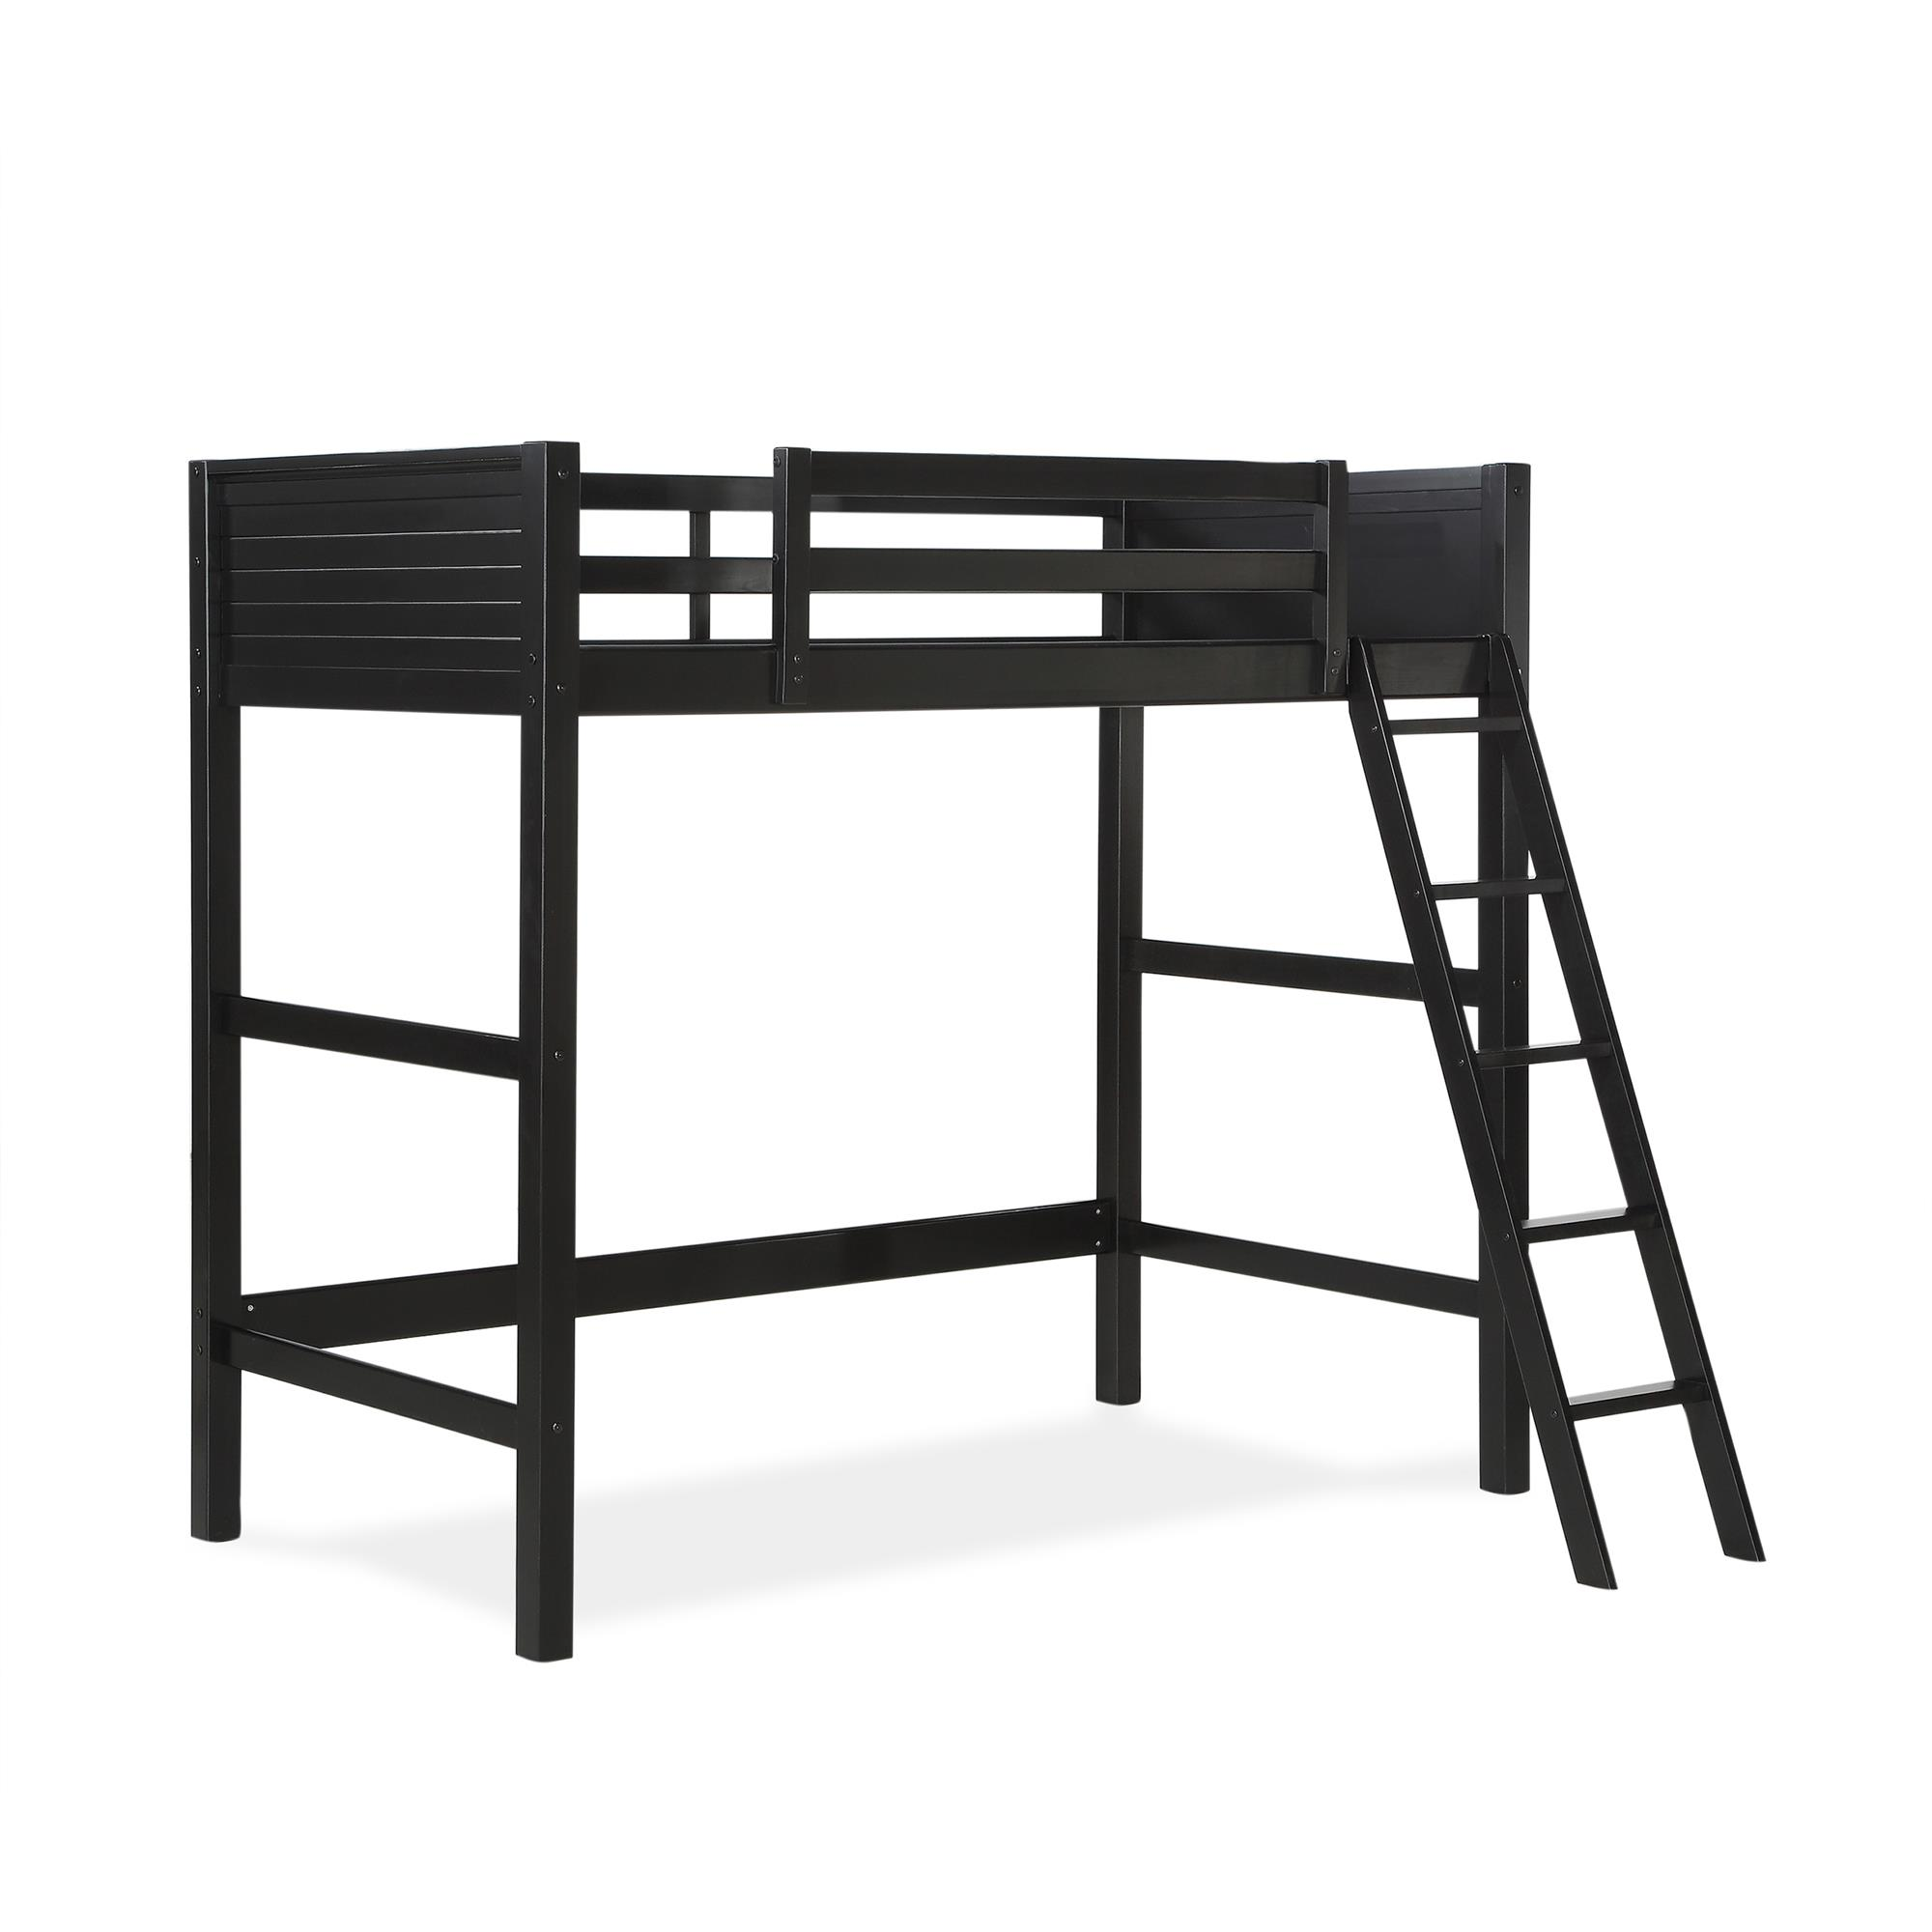 Your Zone Kids Wooden Loft Bed With Ladder Twin Black Walmart Com Walmart Com